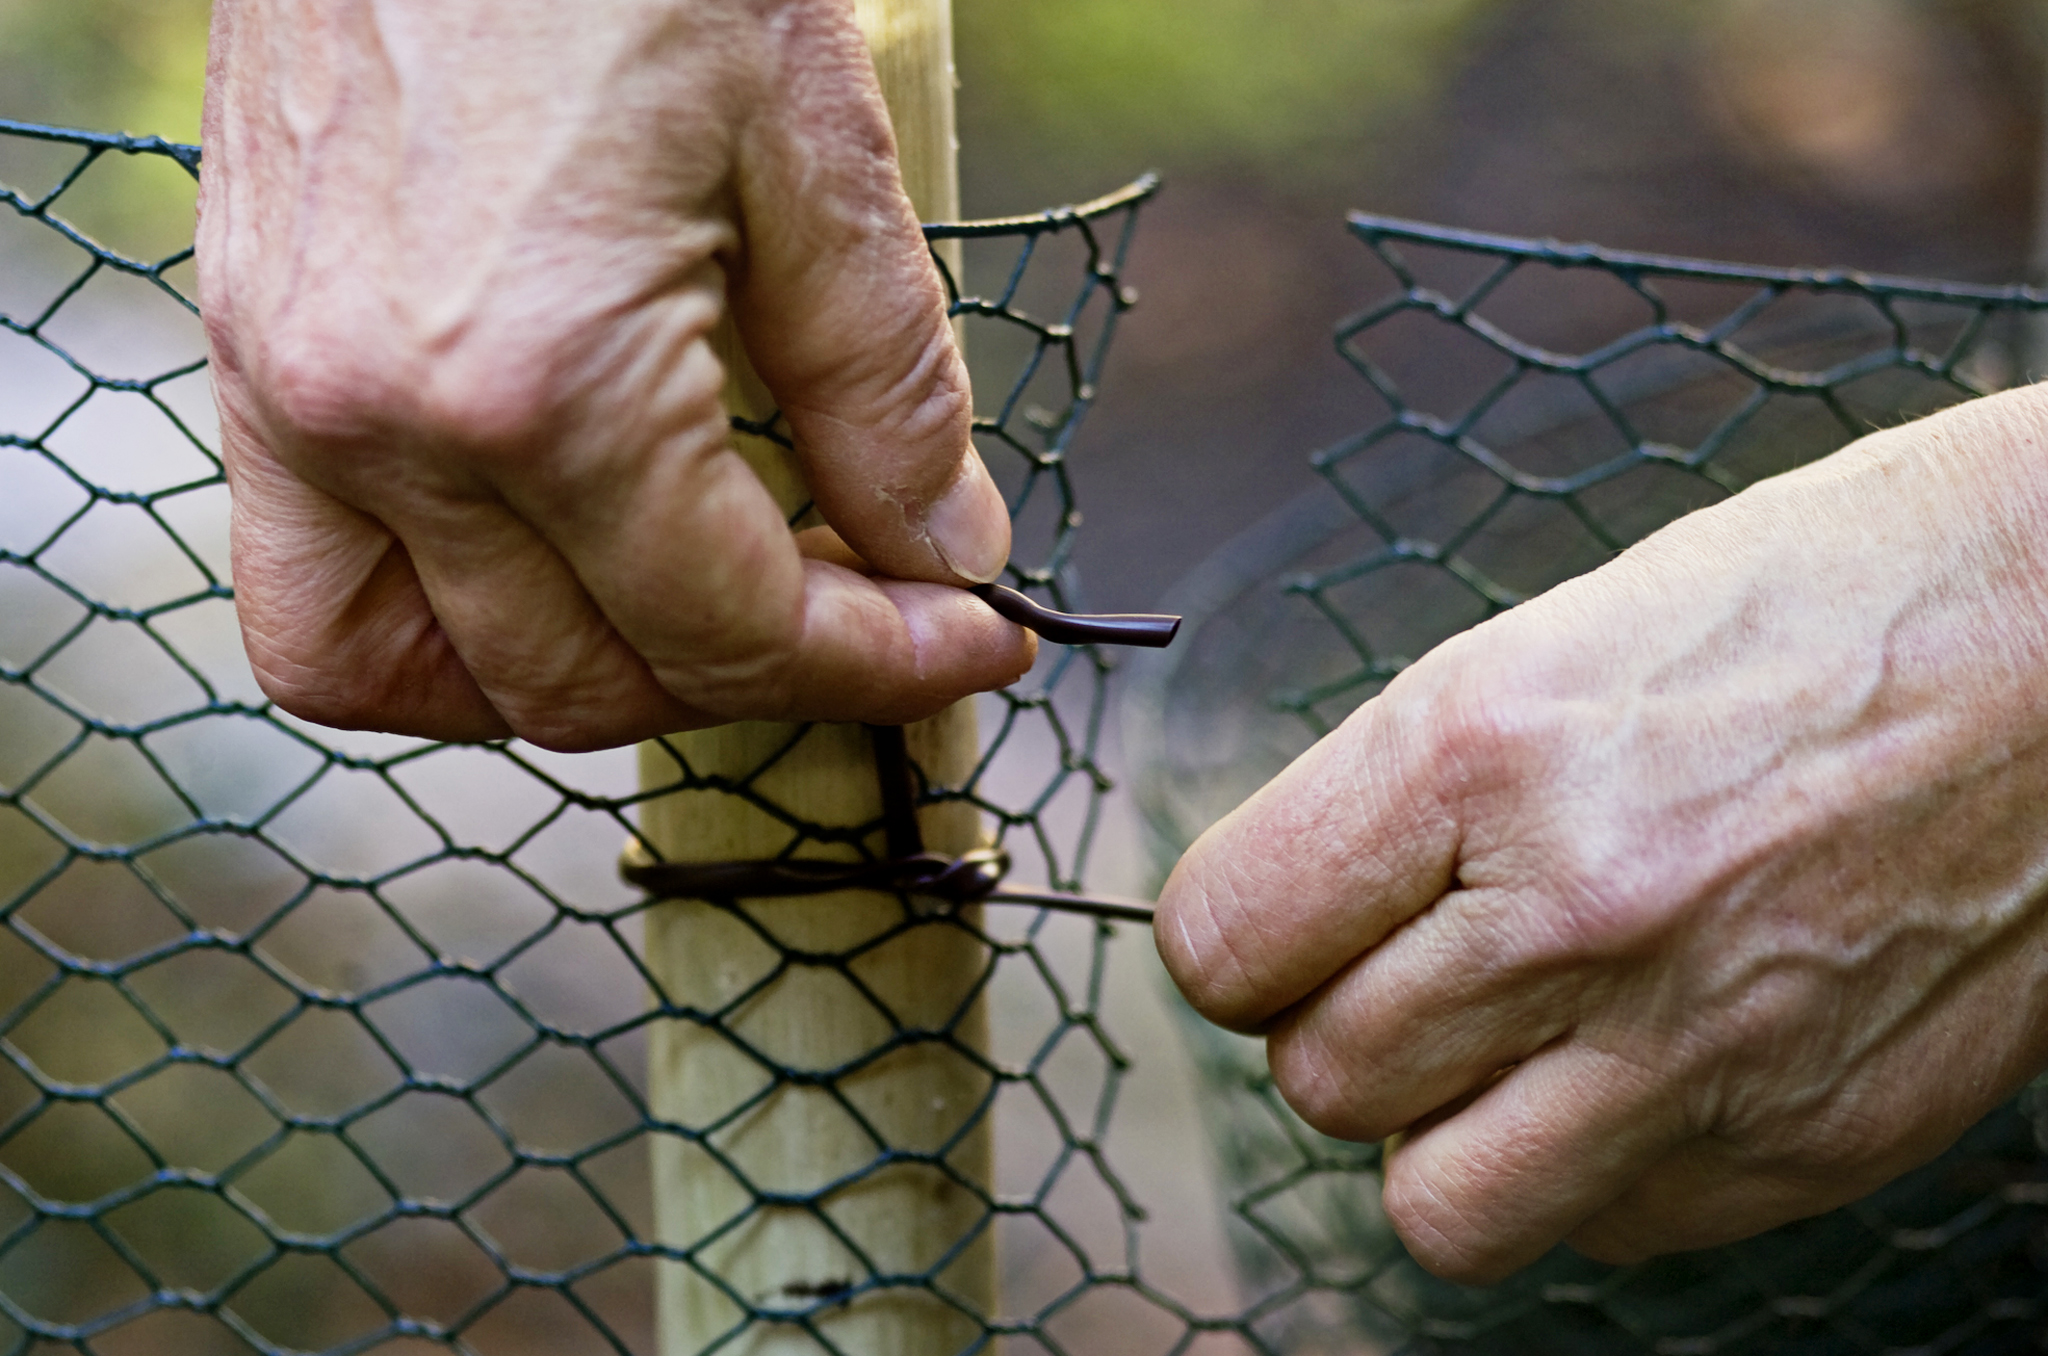 securing-an-overlap-of-chicken-wire-with-wire-to-form-the-containing-wall-2